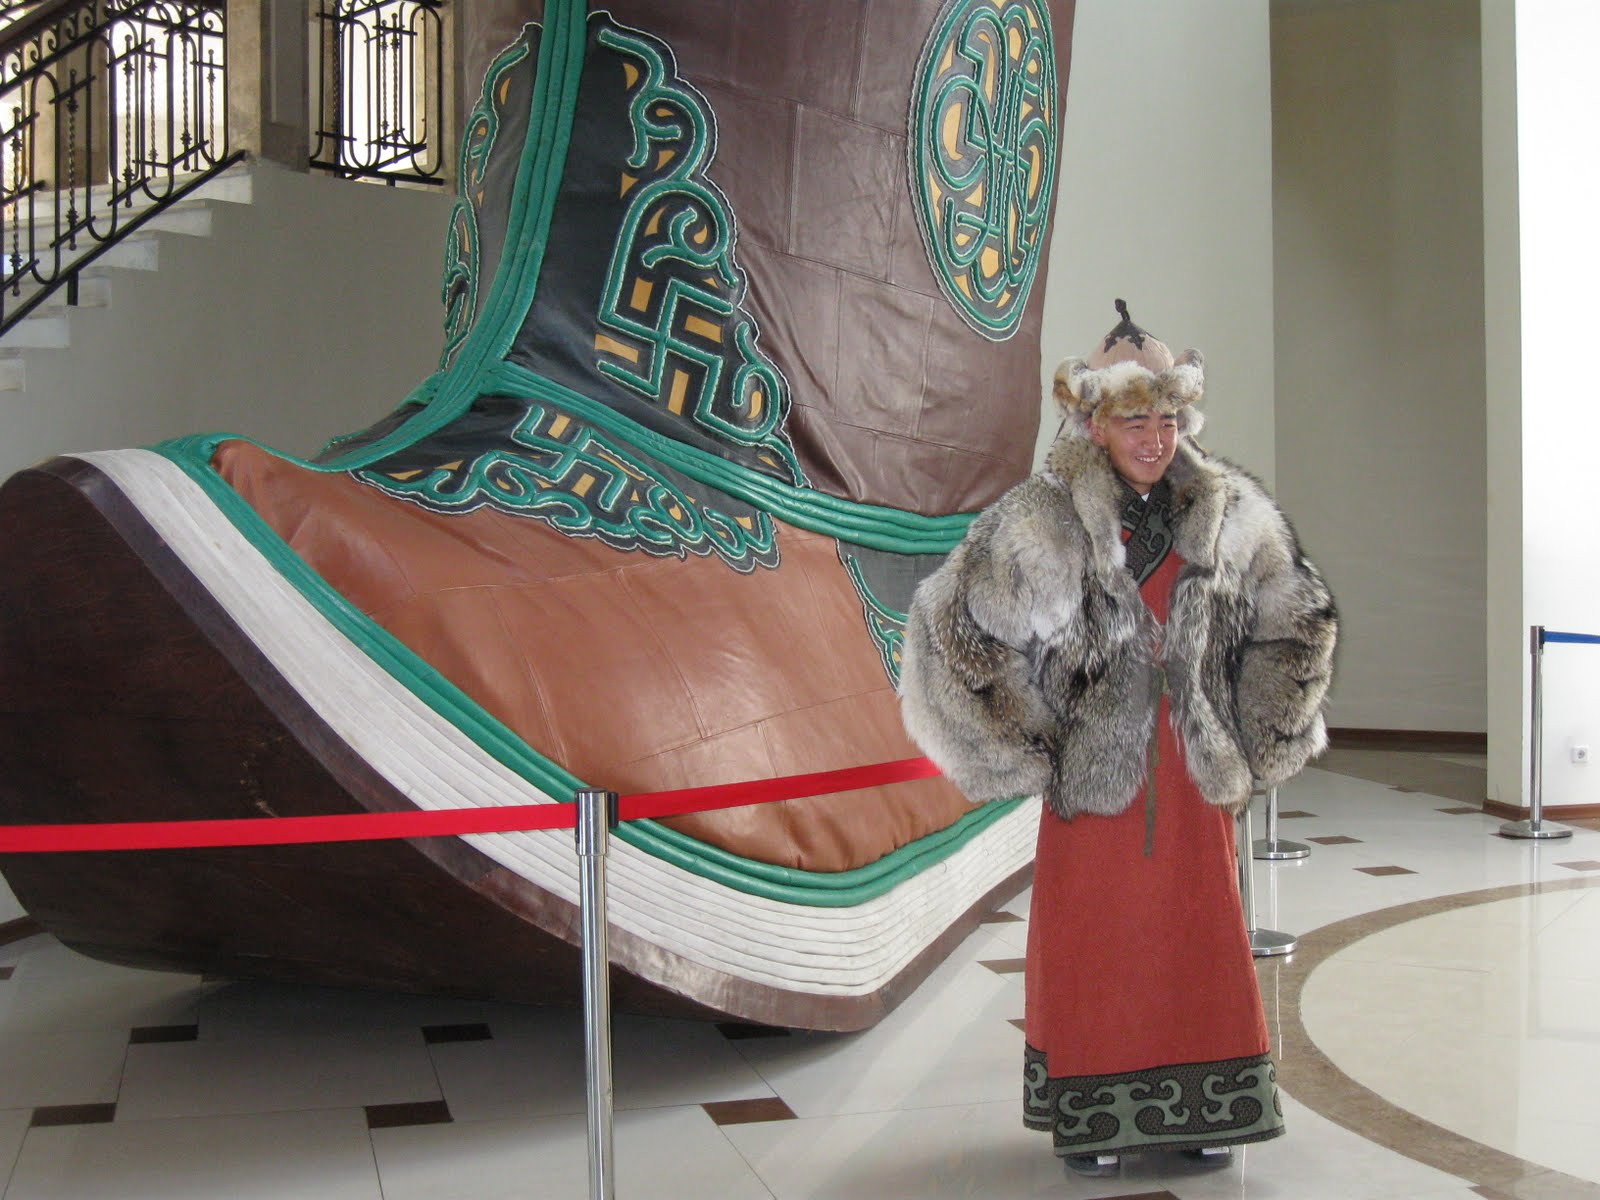 The Intrepid Geographer: Tourism, Mongol Style